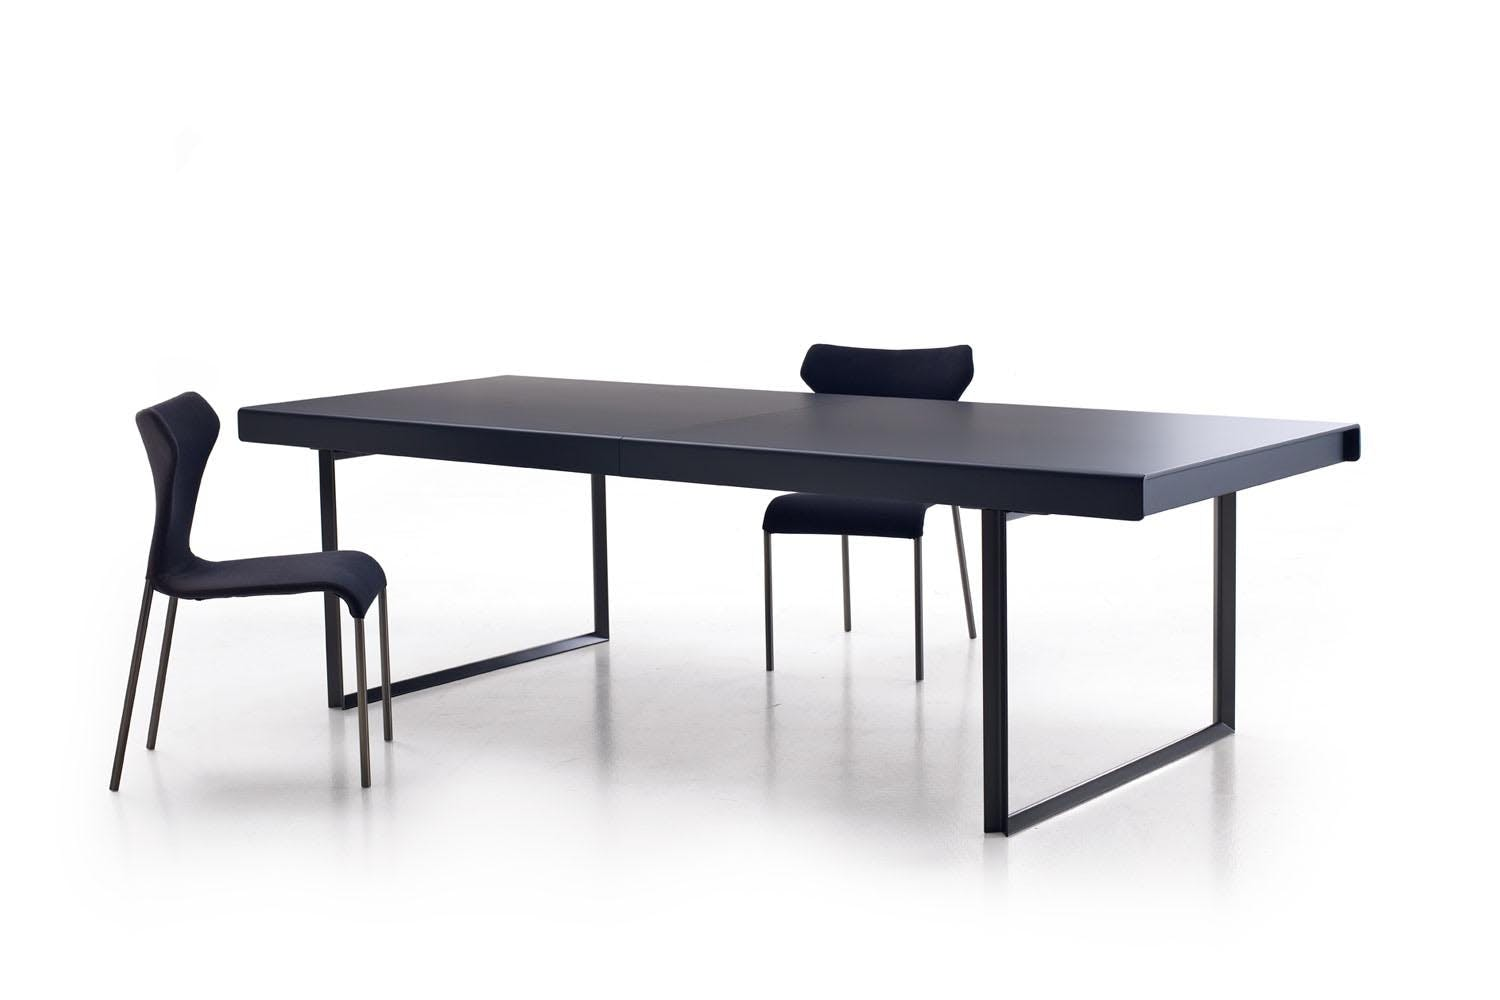 Athos 39 12 table by paolo piva for b b italia space furniture - B b italia athos dining table ...